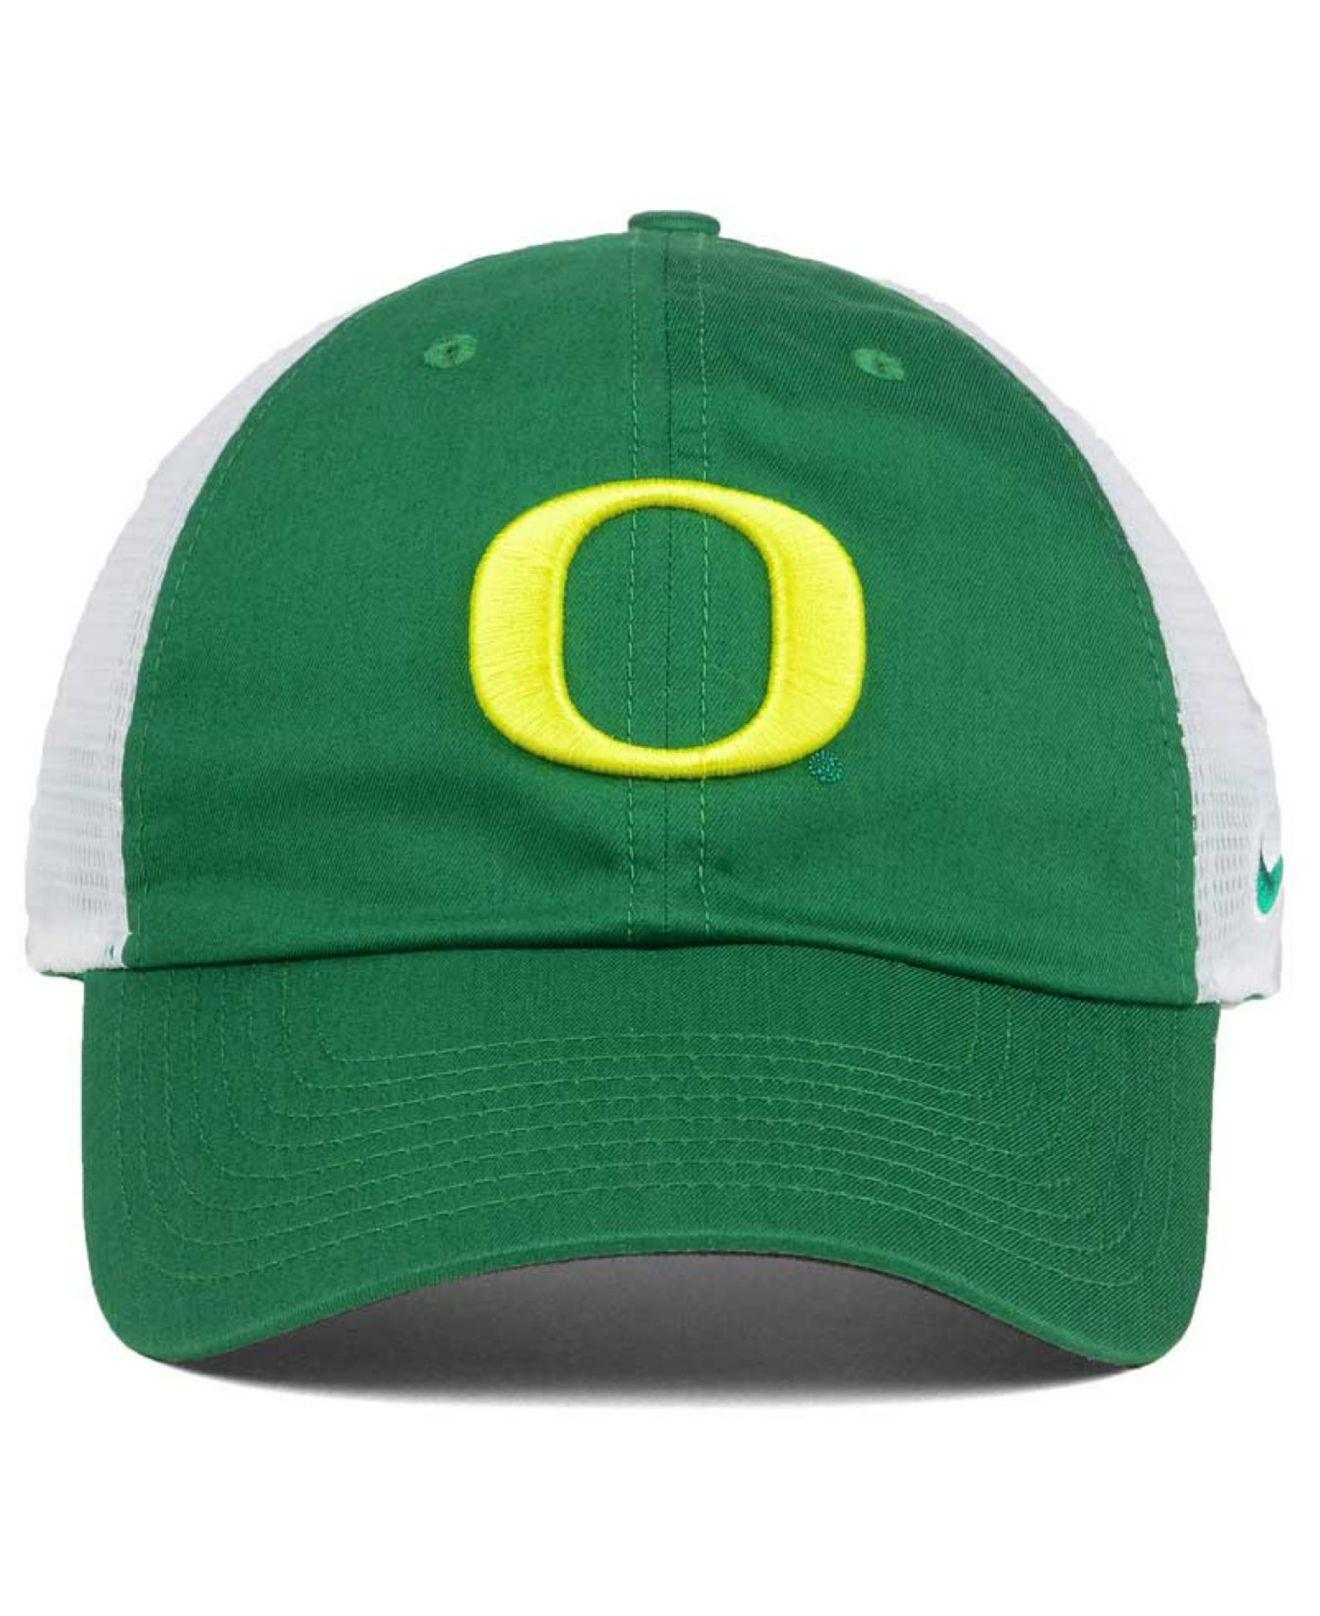 check out e3274 af84e ... discount lyst nike h86 trucker cap in green for men 9aa06 1c9c7